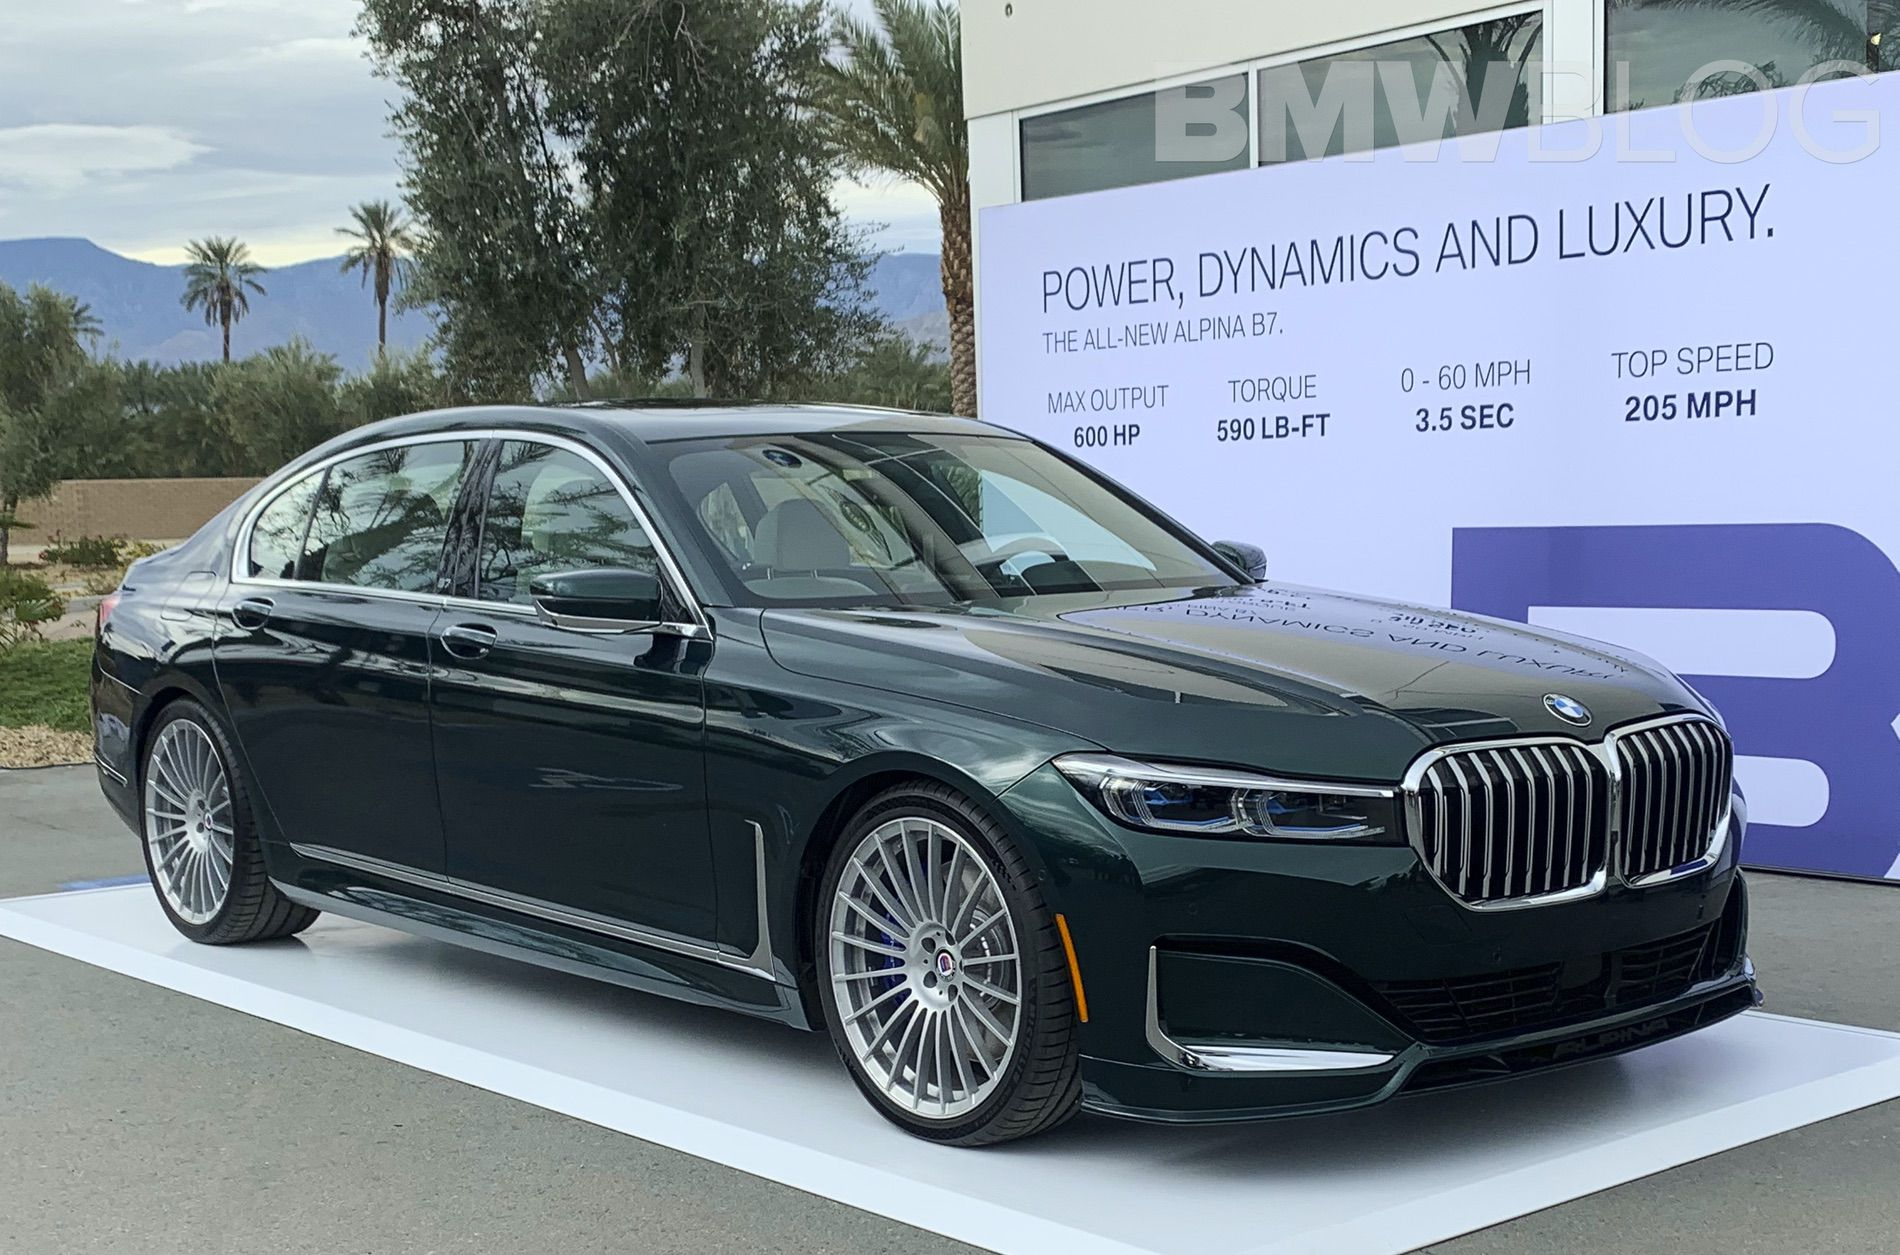 2020-ALPINA-B7-Facelift-19.jpg